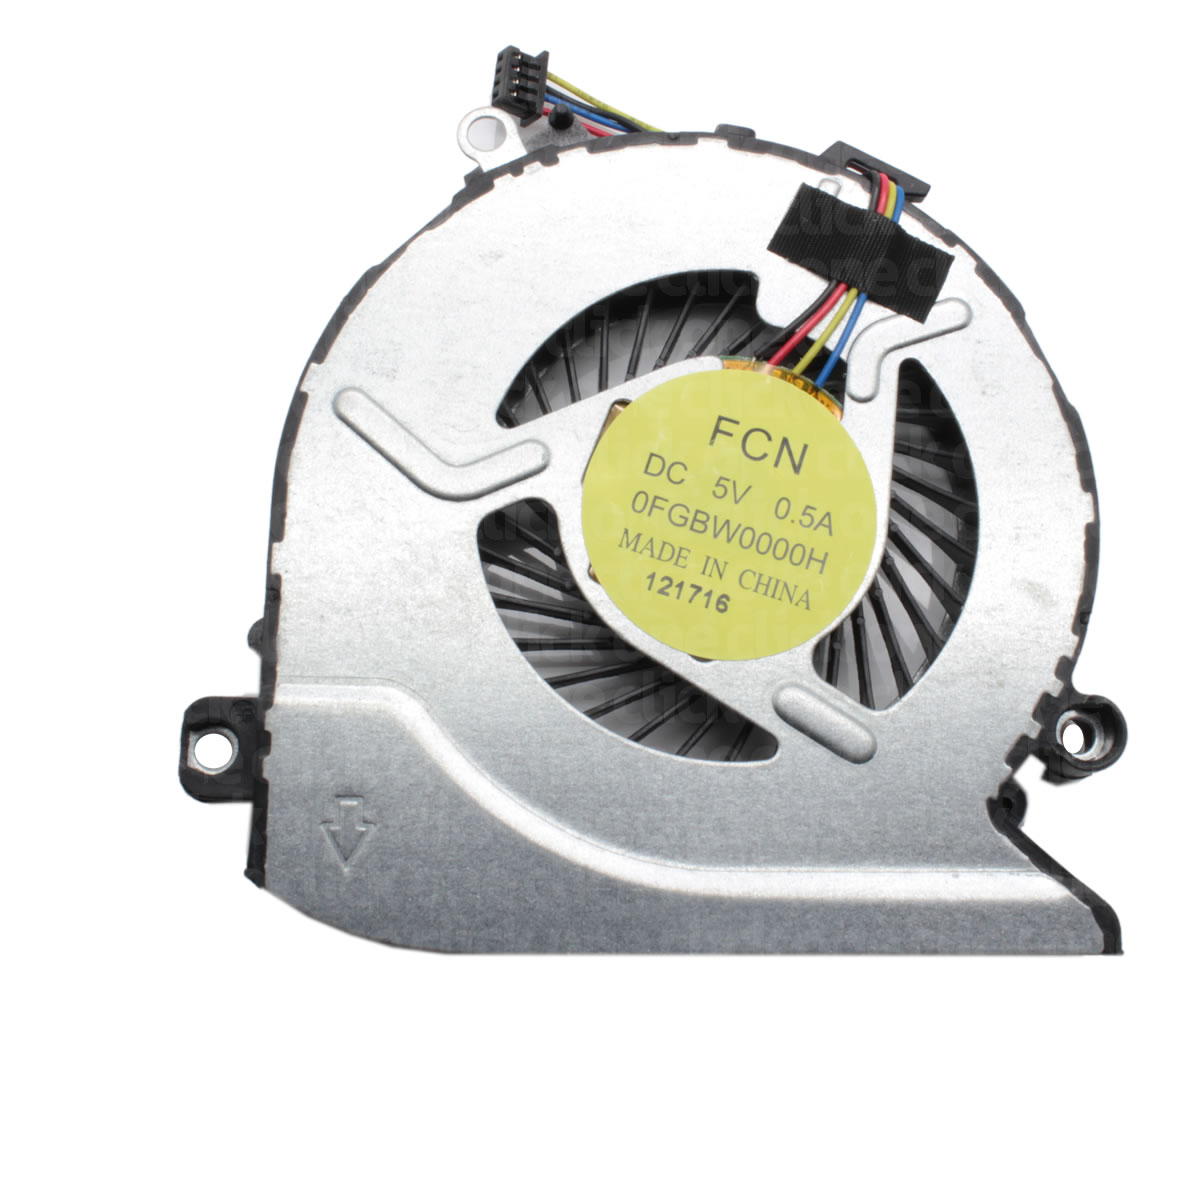 Details about Replacement CPU Cooling Fan 812109-001 0FGBW0000H for HP  Pavilion 15-AB Models